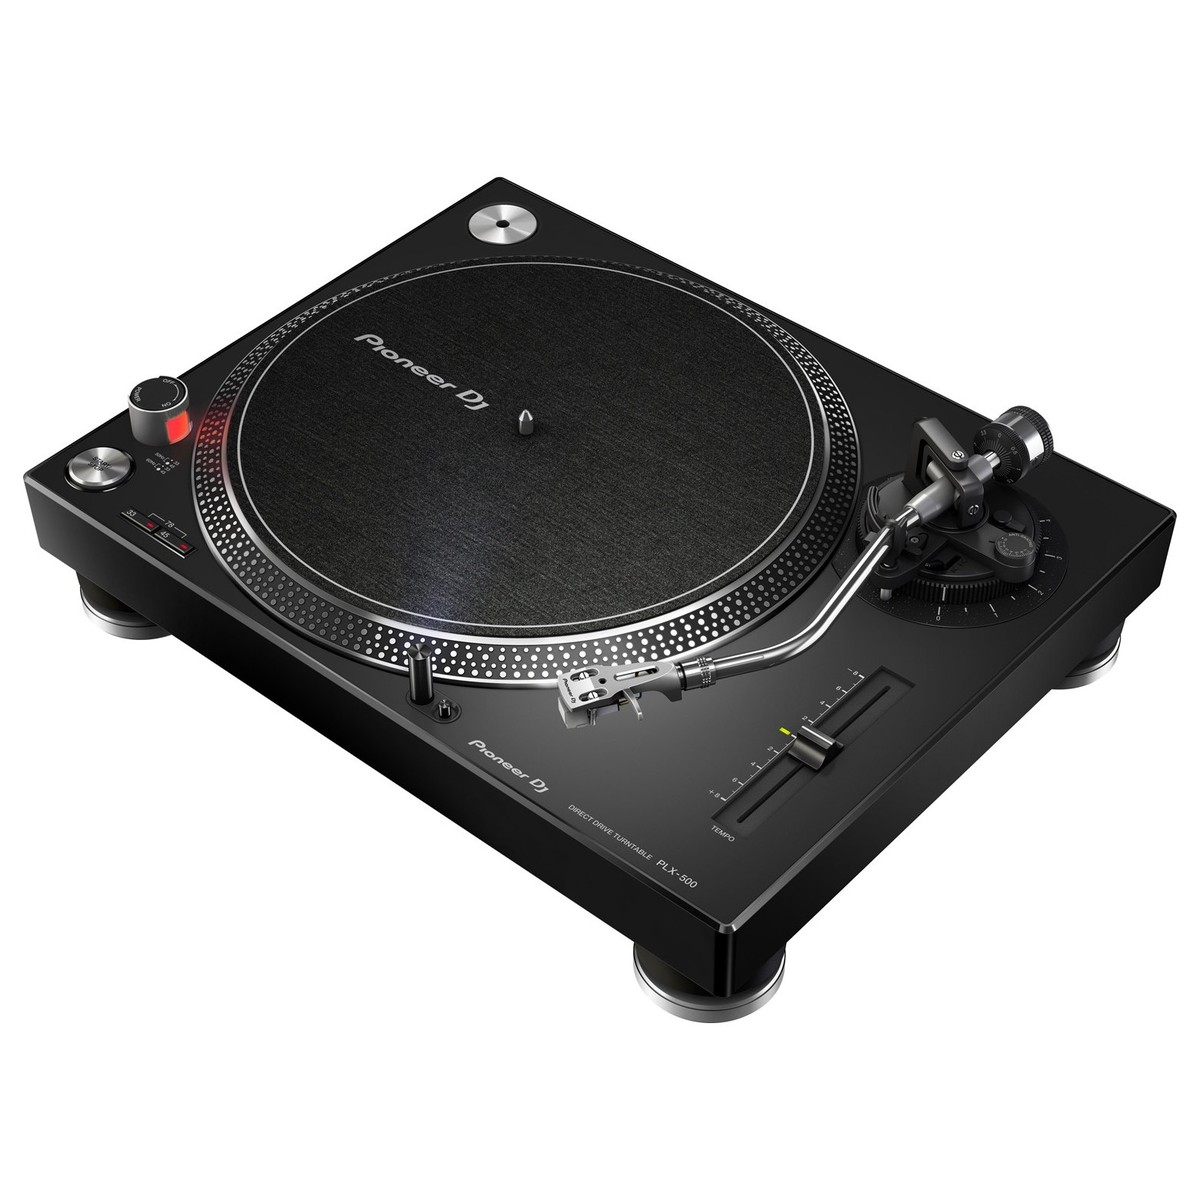 Image of Pioneer PLX-500 Direct Drive Turntable